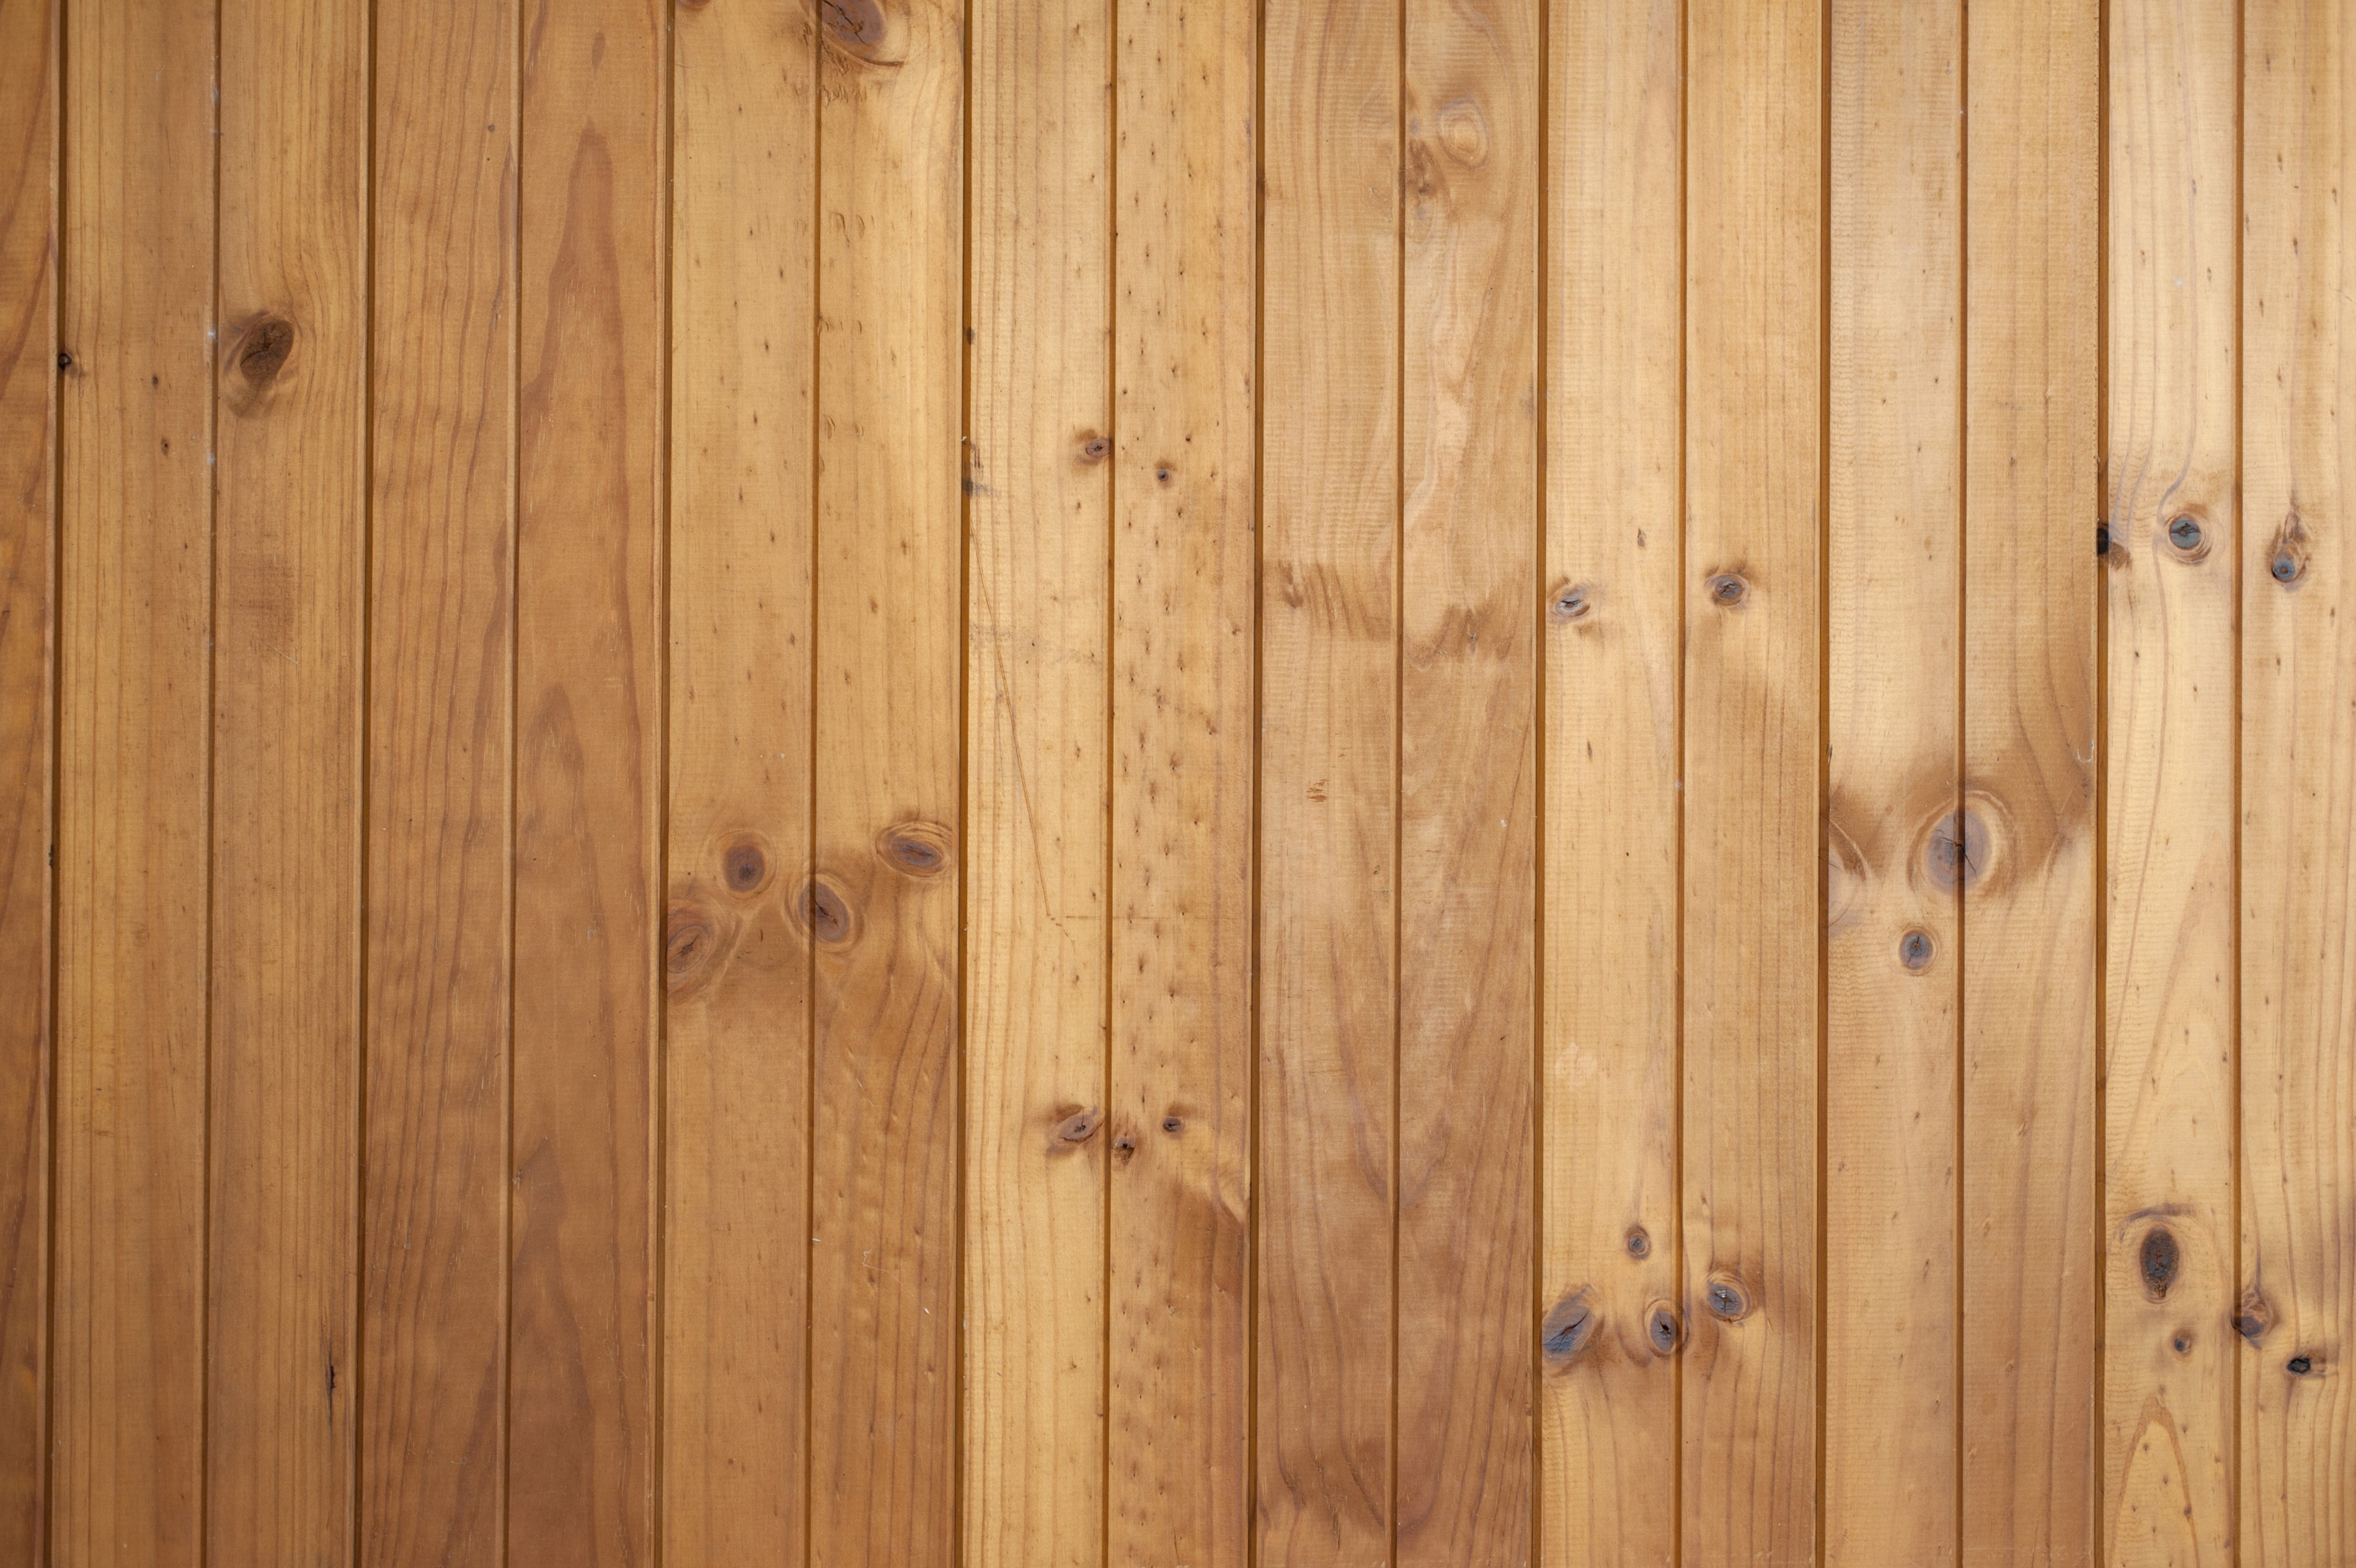 Tongue and groove wooden planks | Free backgrounds and textures ...